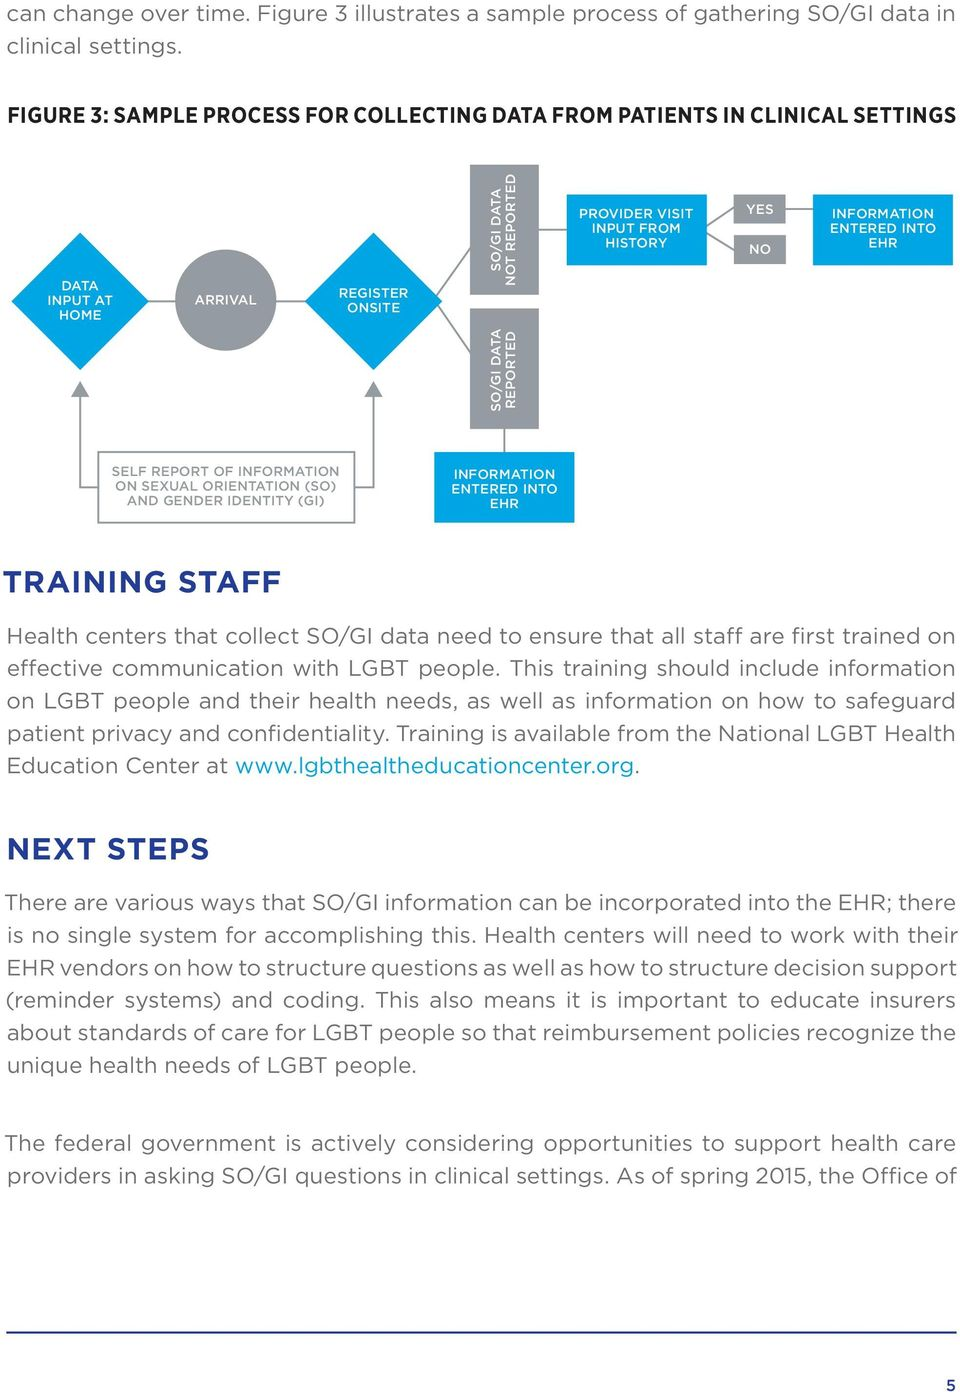 ENTERED INTO EHR SO/GI DATA REPORTED SELF REPORT OF INFORMATION ON SEXUAL ORIENTATION (SO) AND GENDER IDENTITY (GI) INFORMATION ENTERED INTO EHR TRAINING STAFF Health centers that collect SO/GI data